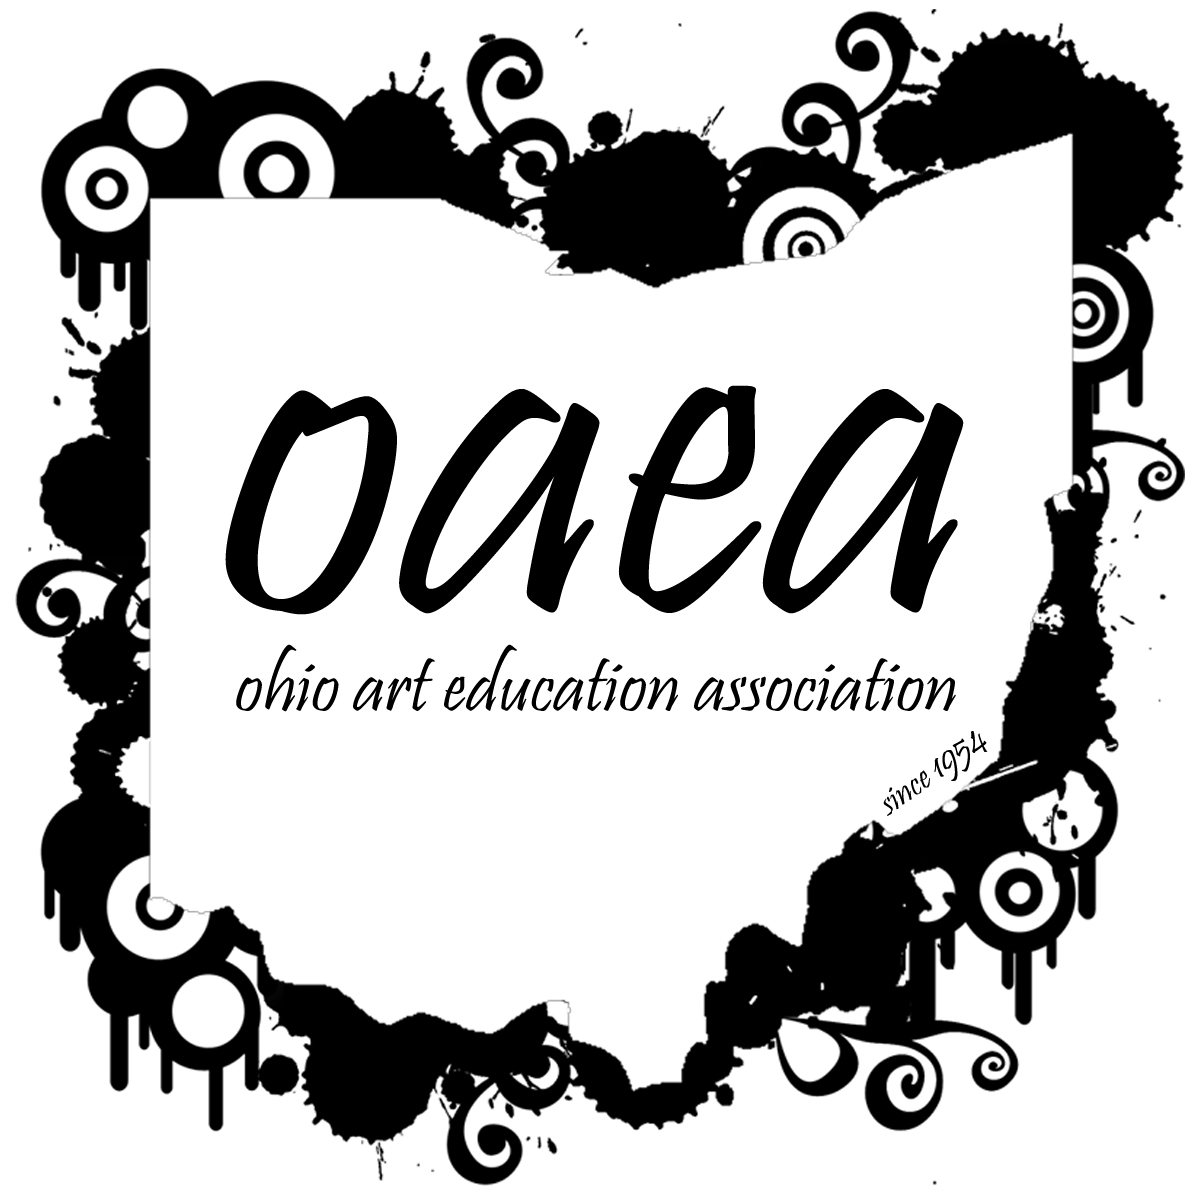 Ohio Art Education Association logo